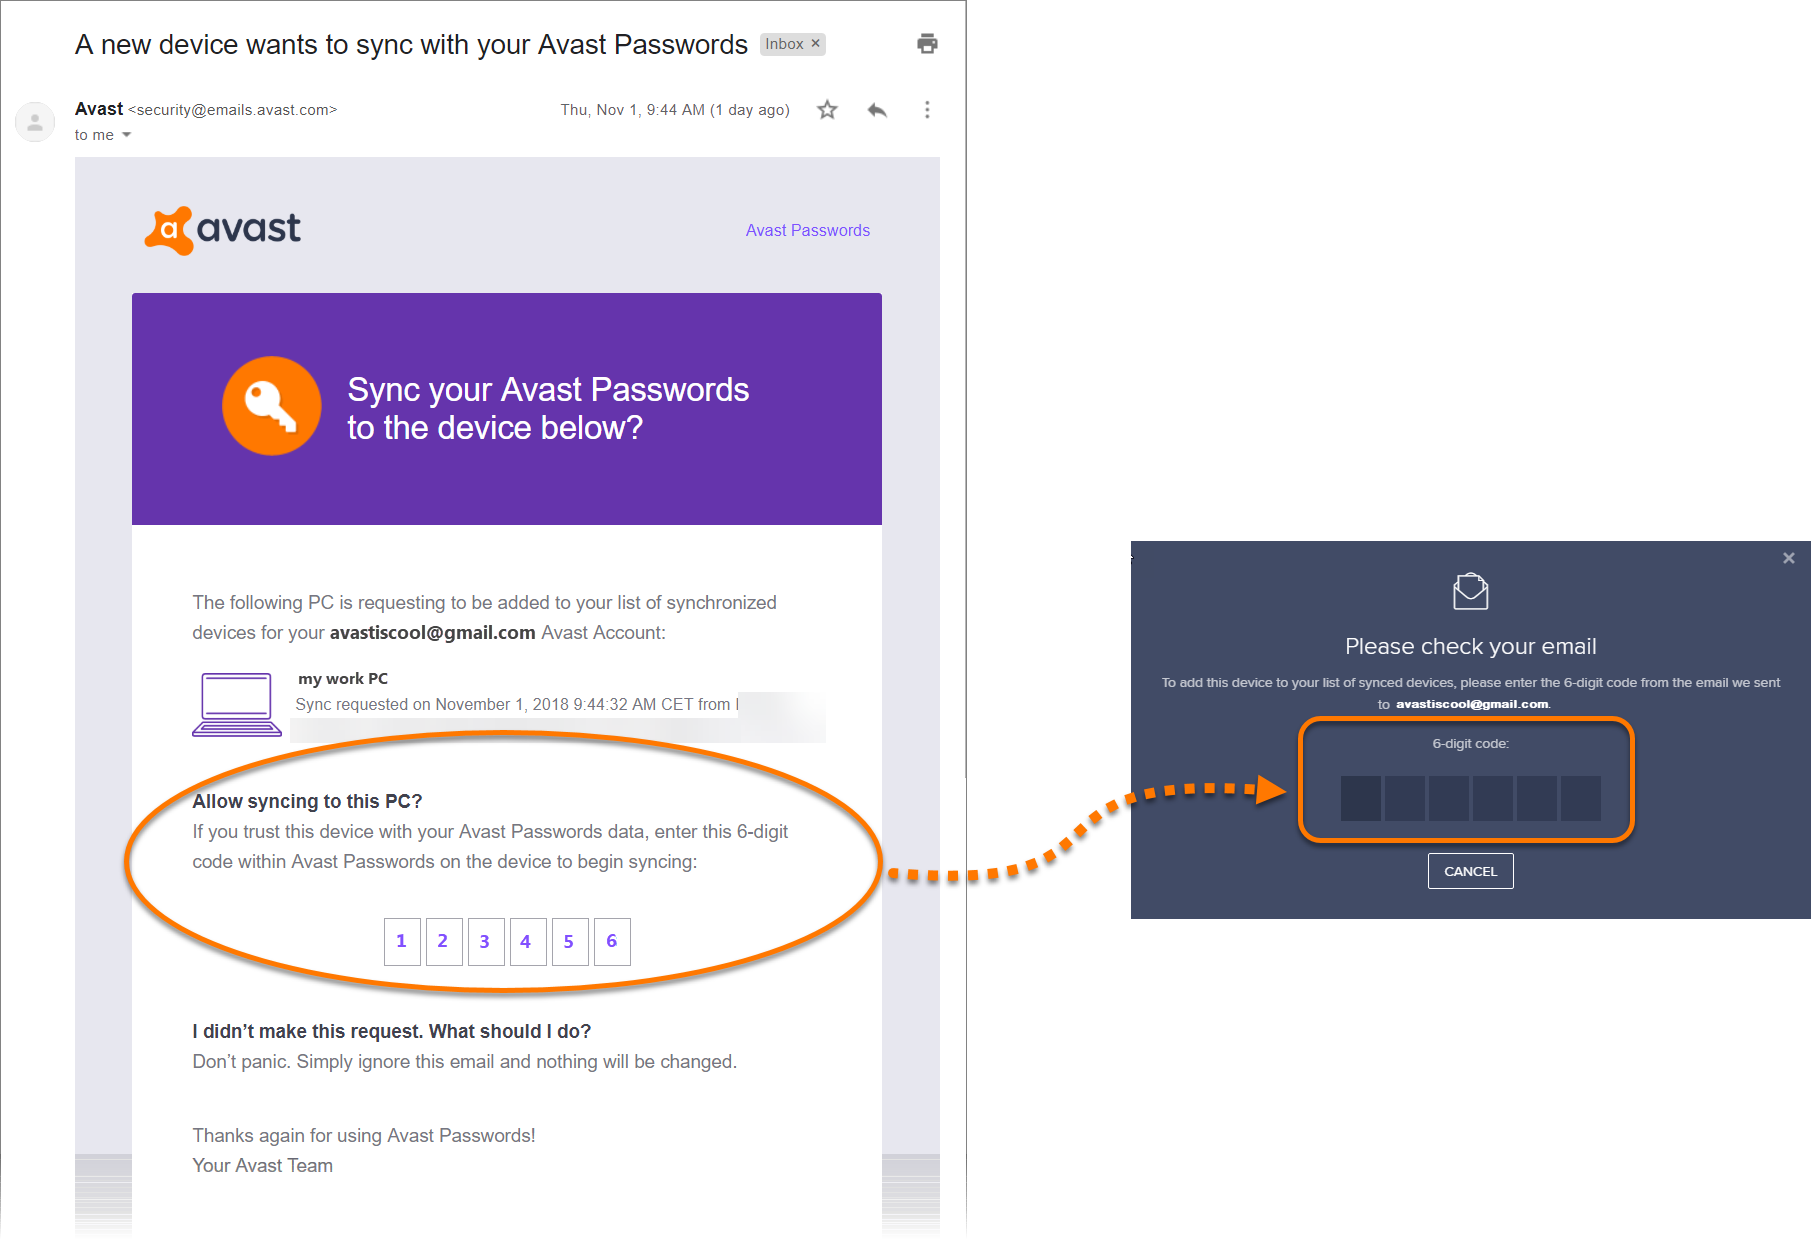 Retrieve the 6-digit code from your email, then enter the code into the  Avast Passwords text box to synchronize your devices.